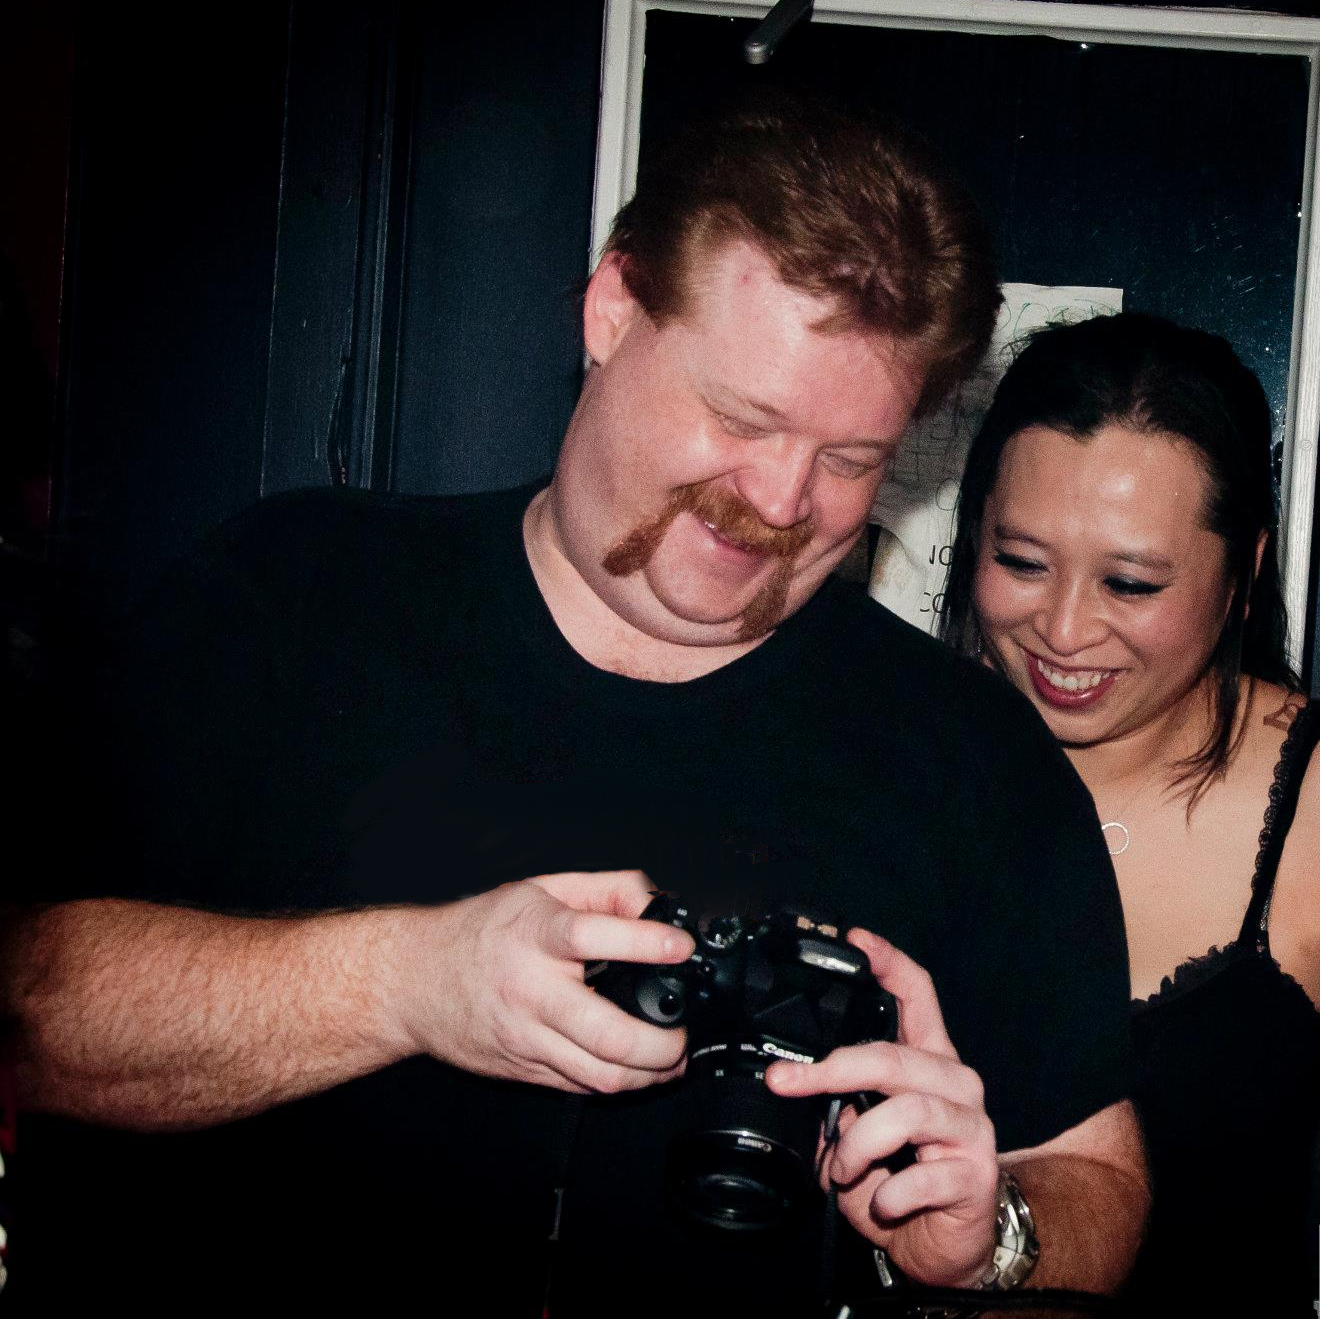 Owner of 603 Boudoir Photography and Rita H. taken by Julien Dumont